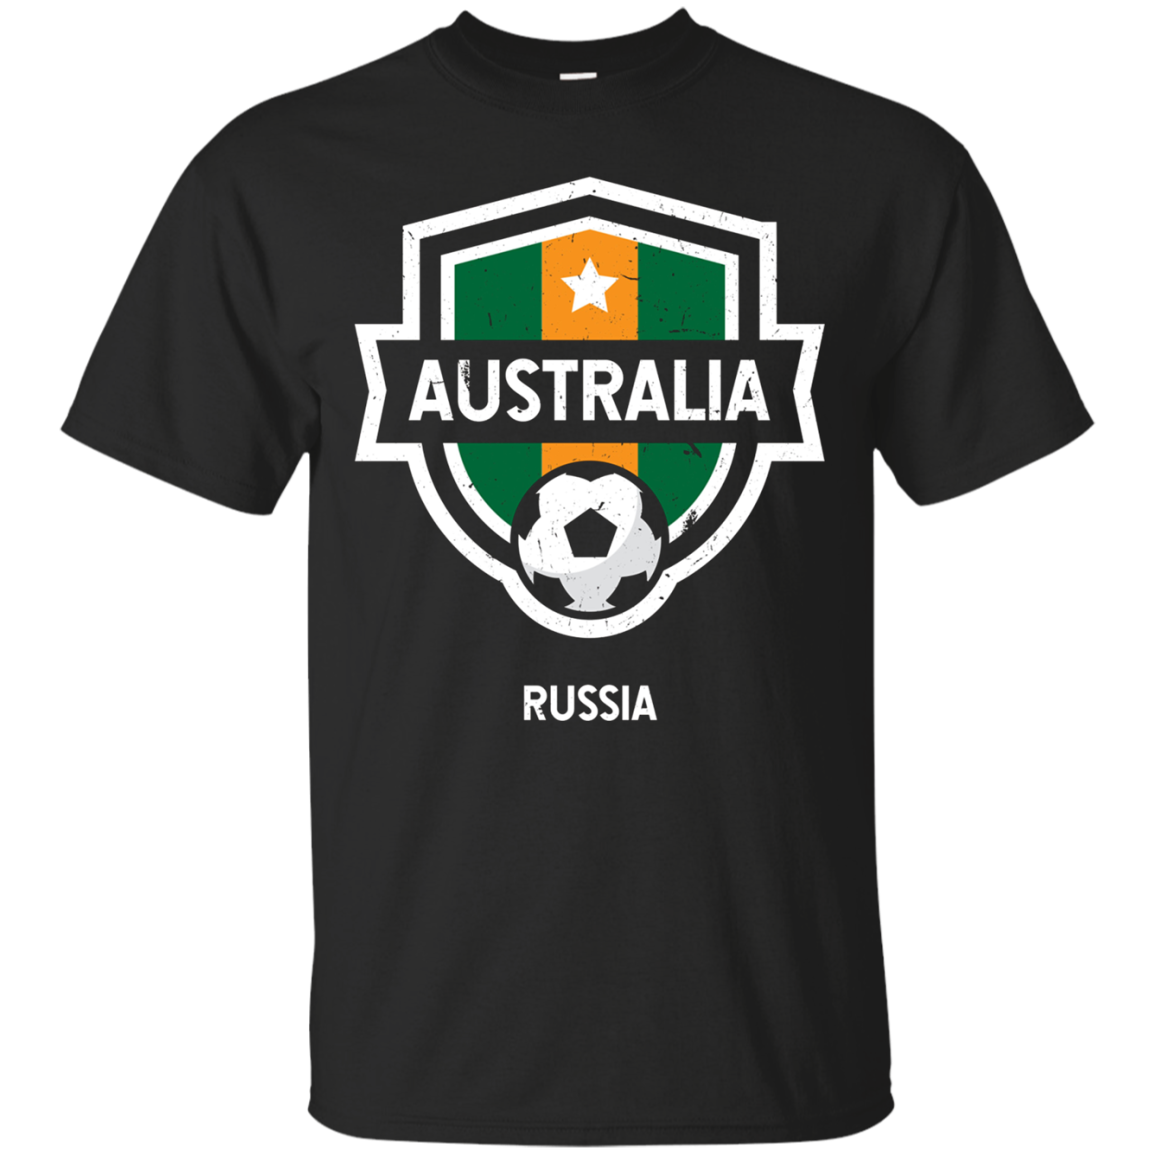 Classic Australia Football 2018 Team, Russia